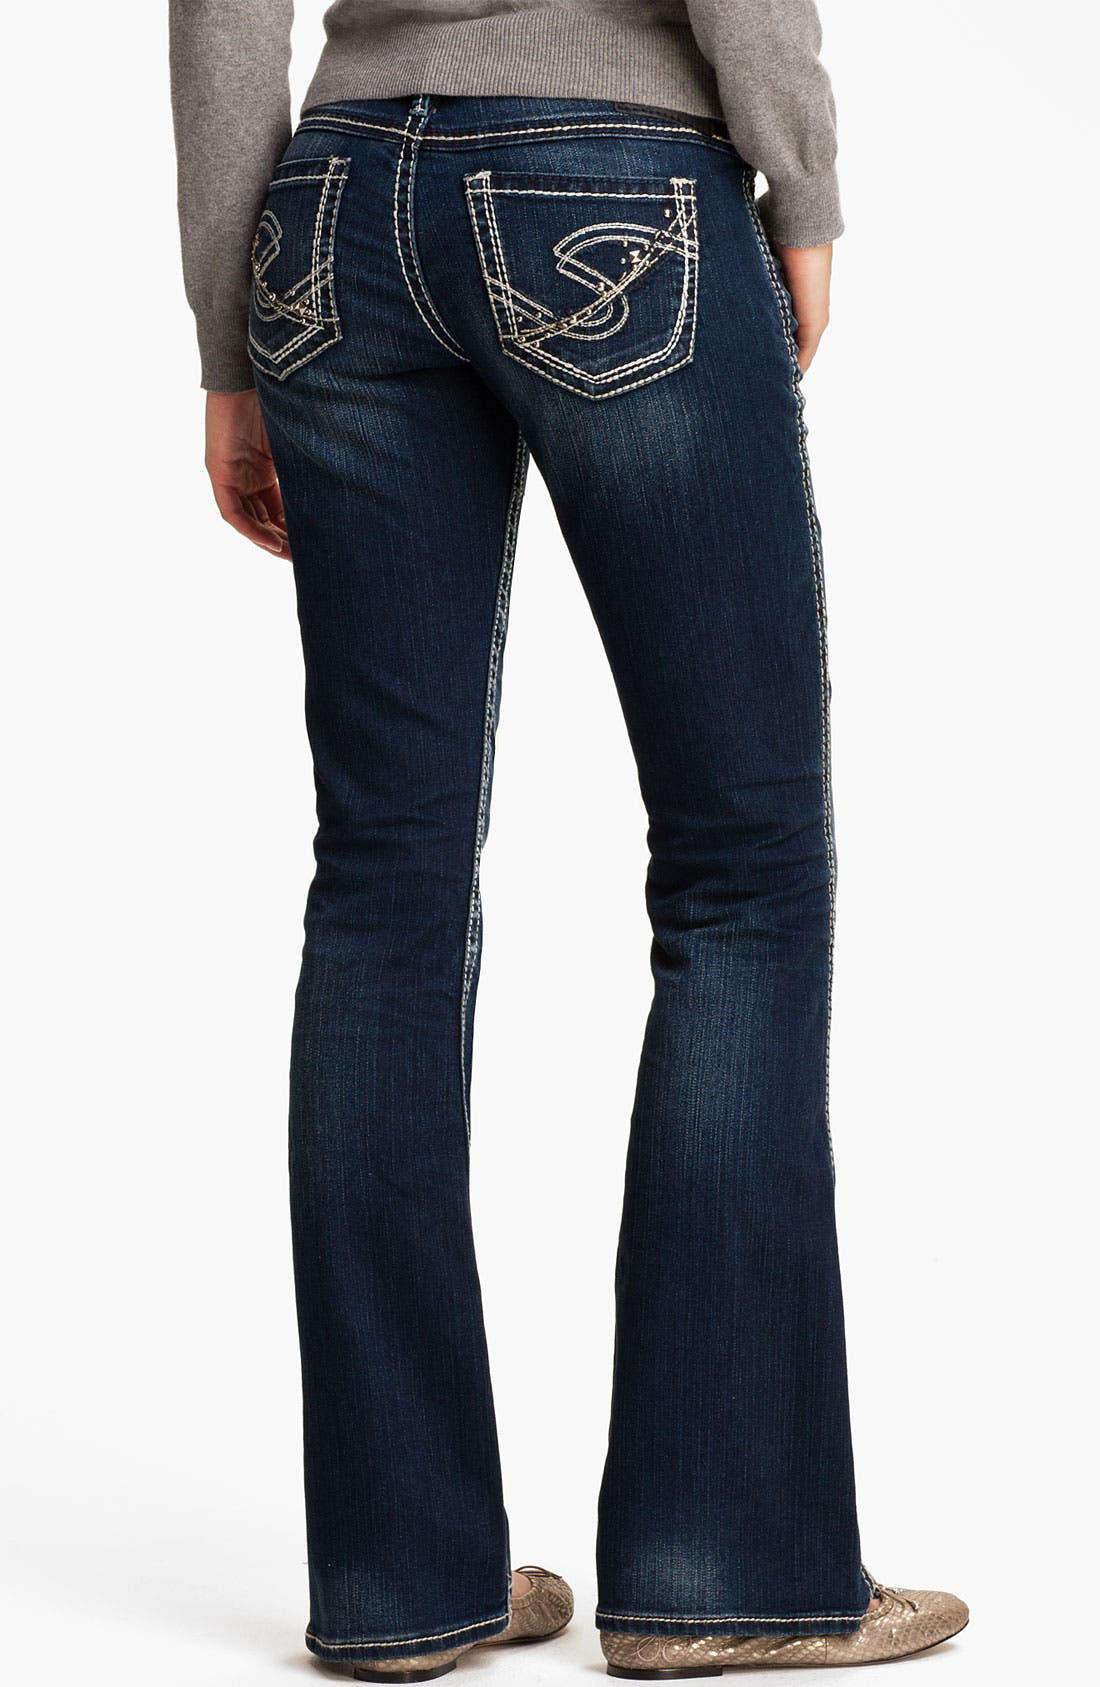 Main Image - Silver Jeans Co. 'Twisted' Bootcut Jeans (Juniors)